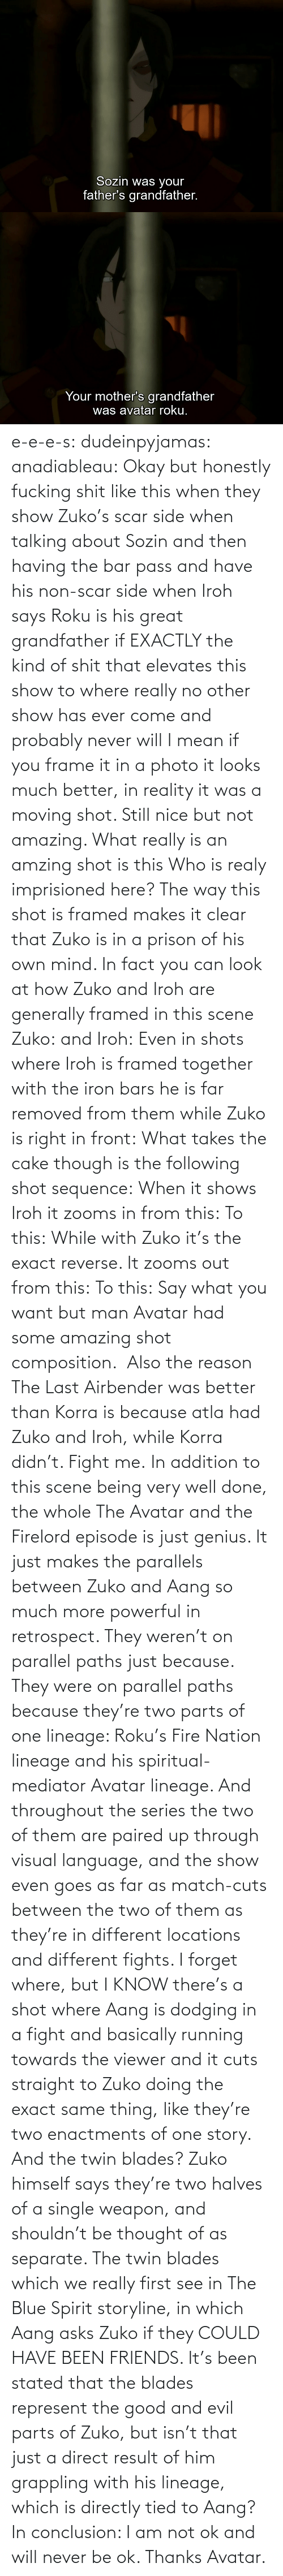 same: e-e-e-s: dudeinpyjamas:   anadiableau: Okay but honestly fucking shit like this when they show Zuko's scar side when talking about Sozin and then having the bar pass and have his non-scar side when Iroh says Roku is his great grandfather if EXACTLY the kind of shit that elevates this show to where really no other show has ever come and probably never will I mean if you frame it in a photo it looks much better, in reality it was a moving shot. Still nice but not amazing. What really is an amzing shot is this Who is realy imprisioned here? The way this shot is framed makes it clear that Zuko is in a prison of his own mind. In fact you can look at how Zuko and Iroh are generally framed in this scene Zuko: and Iroh: Even in shots where Iroh is framed together with the iron bars he is far removed from them while Zuko is right in front:  What takes the cake though is the following shot sequence: When it shows Iroh it zooms in from this: To this: While with Zuko it's the exact reverse. It zooms out from this: To this: Say what you want but man Avatar had some amazing shot composition.   Also the reason The Last Airbender was better than Korra is because atla had Zuko and Iroh, while Korra didn't. Fight me.    In addition to this scene being very well done, the whole The Avatar and the Firelord episode is just genius.  It just makes the parallels between Zuko and Aang so much more powerful in retrospect.  They weren't on parallel paths just because.  They were on parallel paths because they're two parts of one lineage: Roku's Fire Nation lineage and his spiritual-mediator Avatar lineage.  And throughout the series the two of them are paired up through visual language, and the show even goes as far as match-cuts between the two of them as they're in different locations and different fights.  I forget where, but I KNOW there's a shot where Aang is dodging in a fight and basically running towards the viewer and it cuts straight to Zuko doing the exact same thing, like they're two enactments of one story.   And the twin blades?  Zuko himself says they're two halves of a single weapon, and shouldn't be thought of as separate.  The twin blades which we really first see in The Blue Spirit storyline, in which Aang asks Zuko if they COULD HAVE BEEN FRIENDS.  It's been stated that the blades represent the good and evil parts of Zuko, but isn't that just a direct result of him grappling with his lineage, which is directly tied to Aang? In conclusion: I am not ok and will never be ok.  Thanks Avatar.